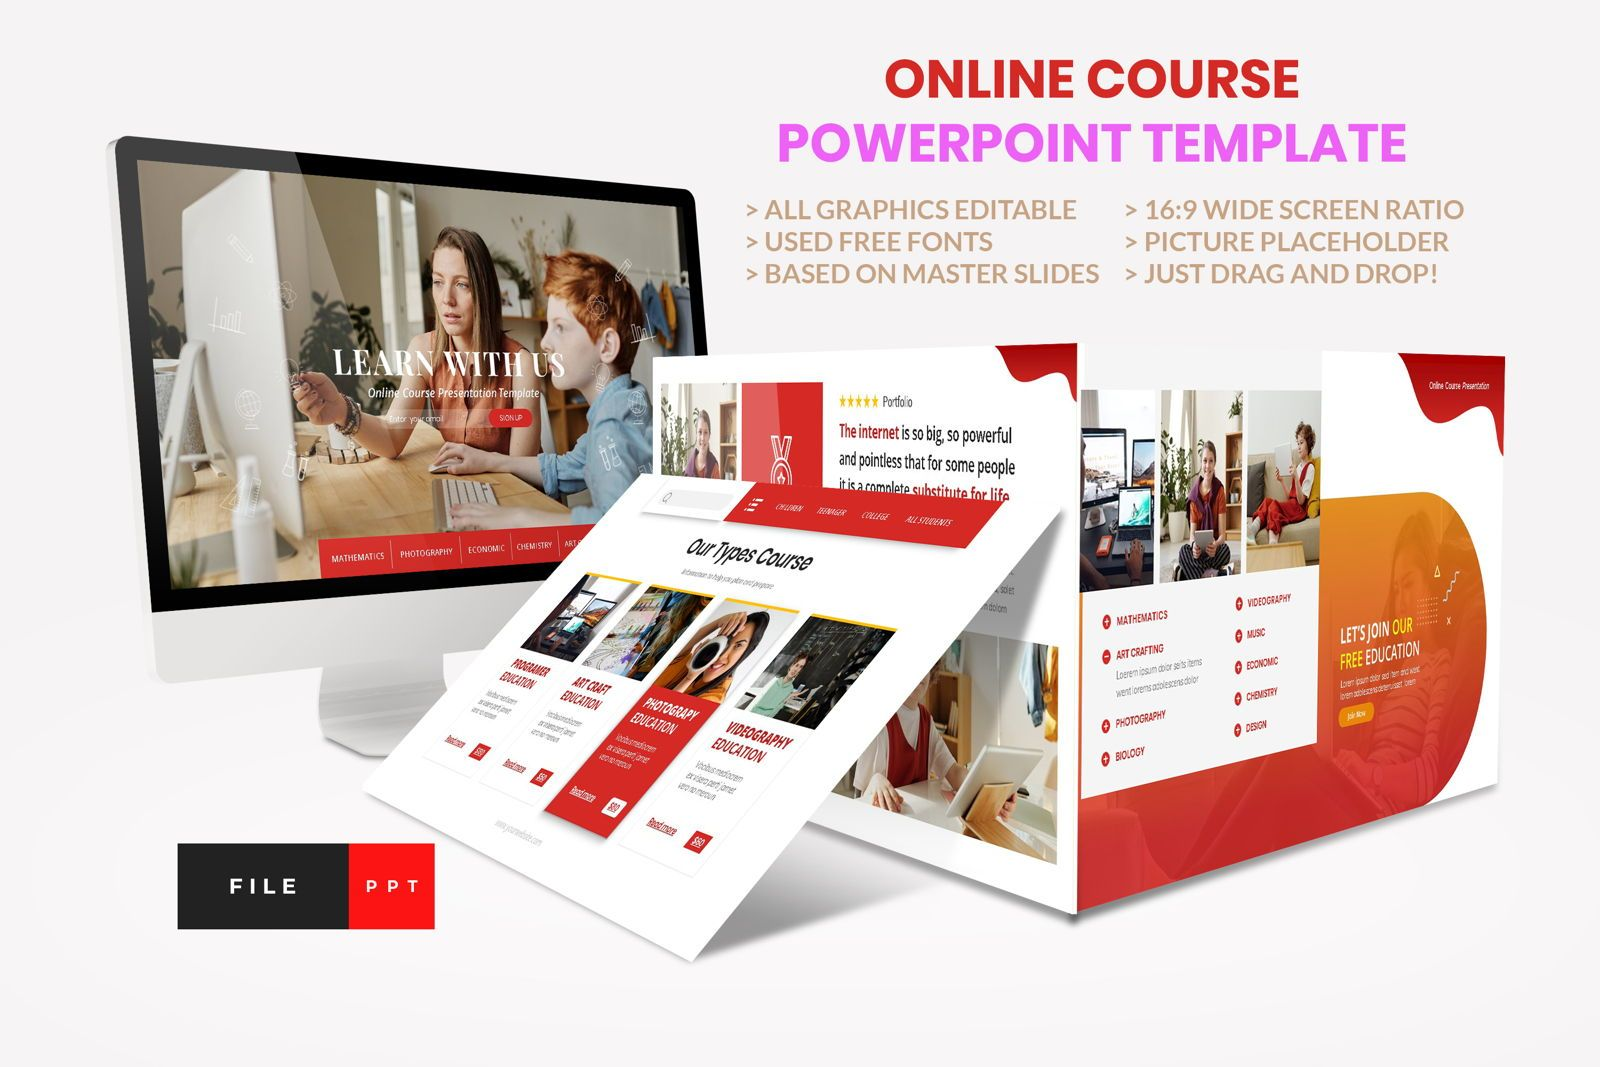 Online Course - Education PowerPoint Template, 08606, Presentation Templates — PoweredTemplate.com